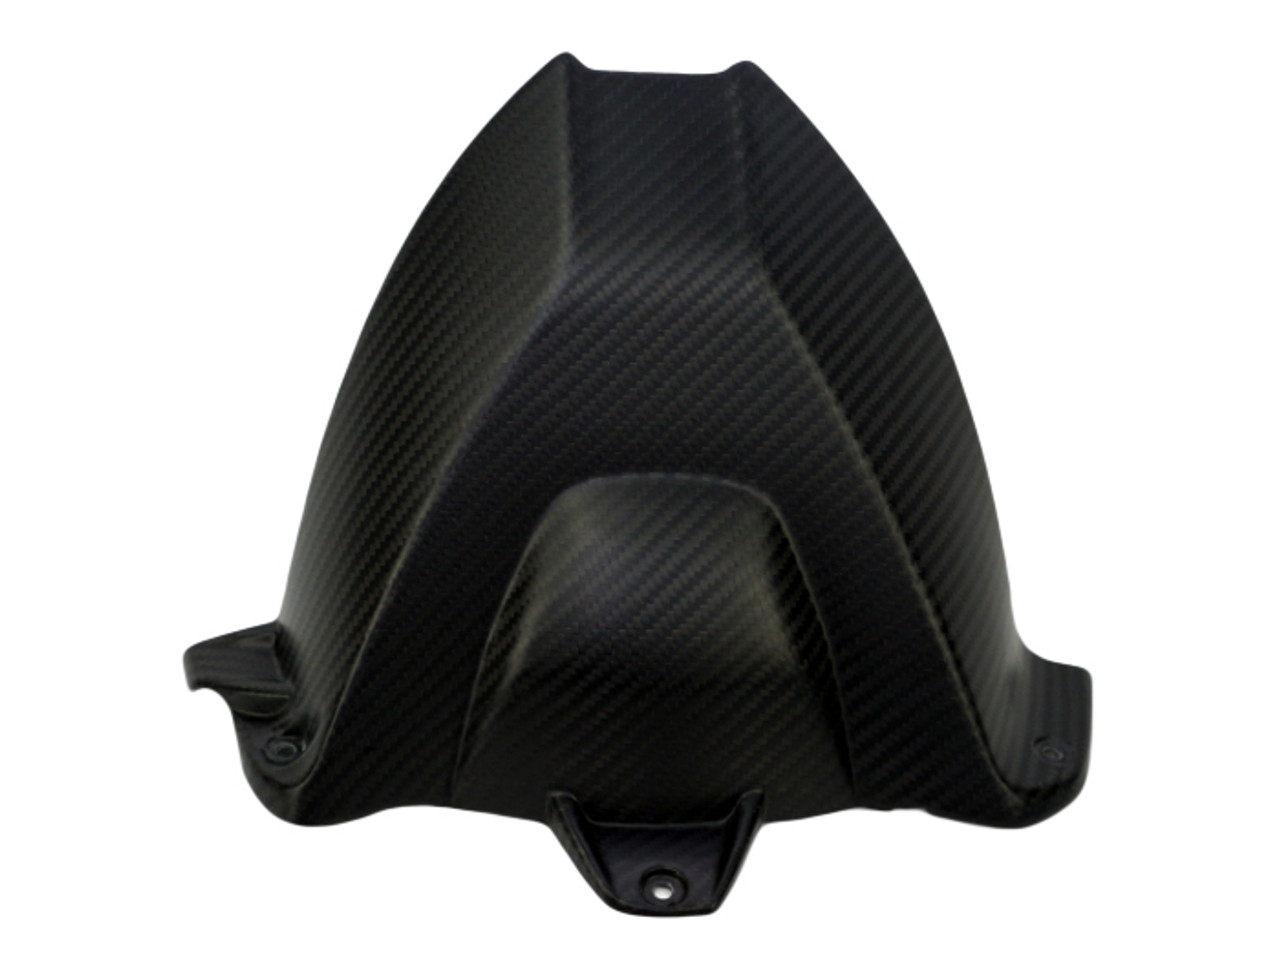 Rear Hugger w/o cutout in Matte Twill Weave Carbon Fiber for BMW S1000RR, S1000R